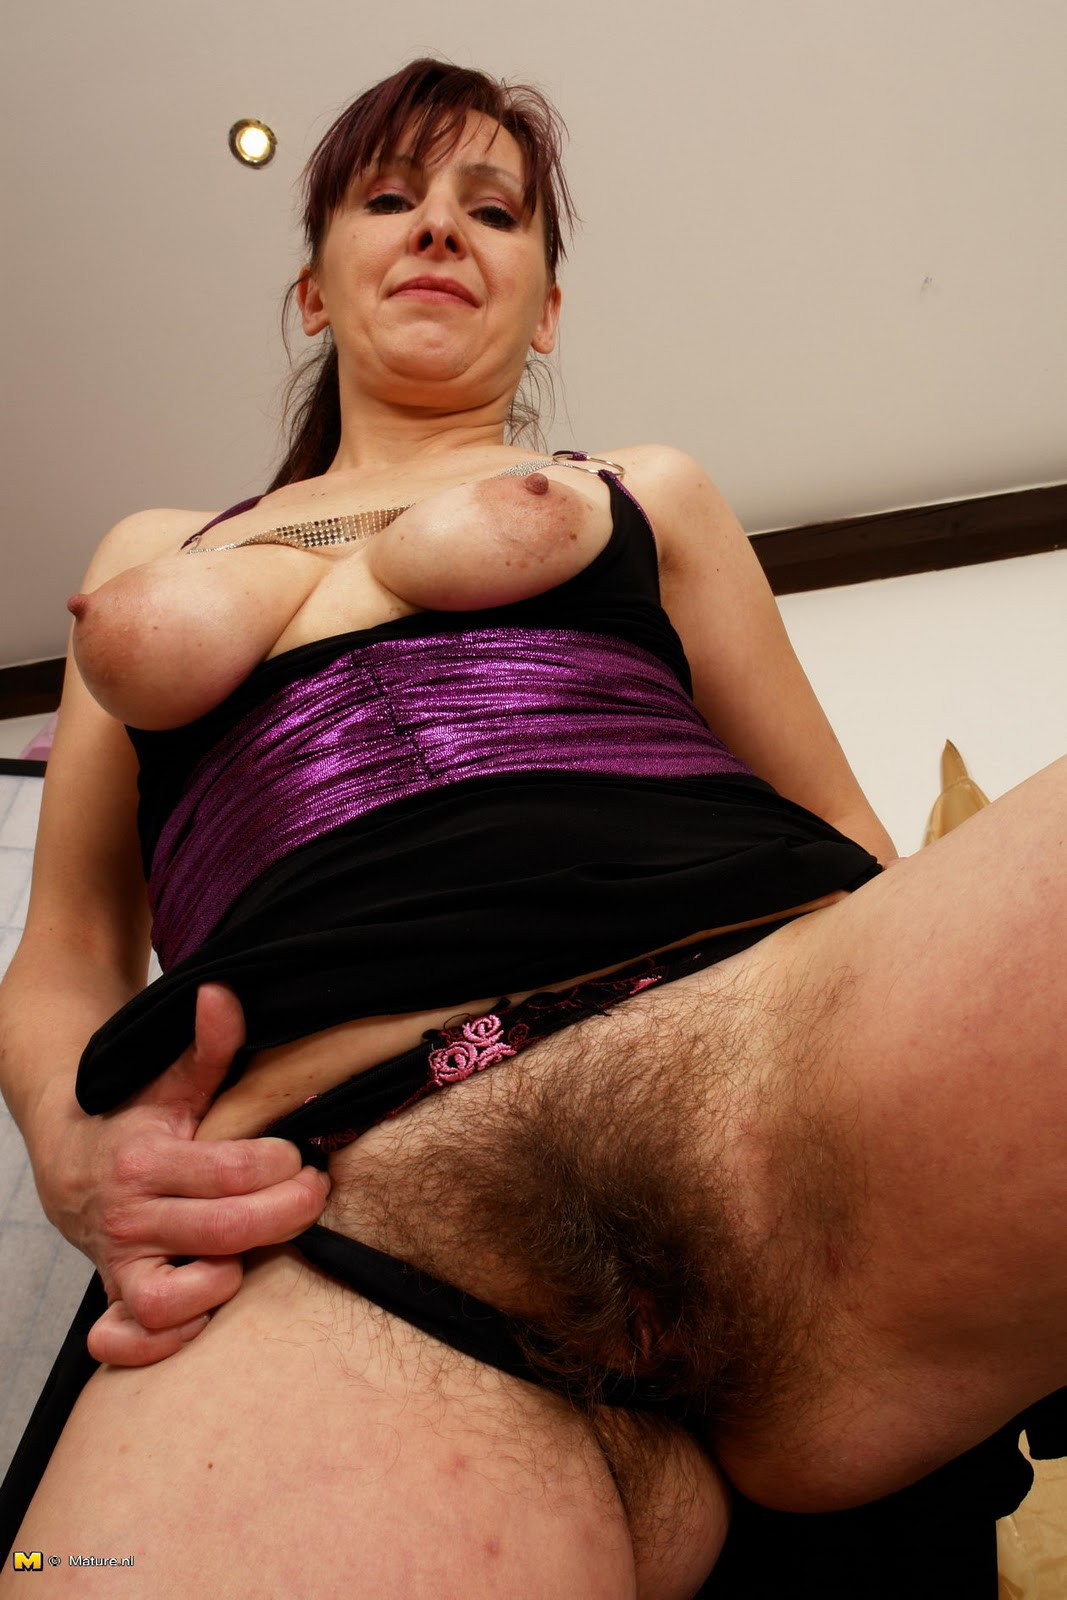 Action, Amature hairy dildo mało jebania